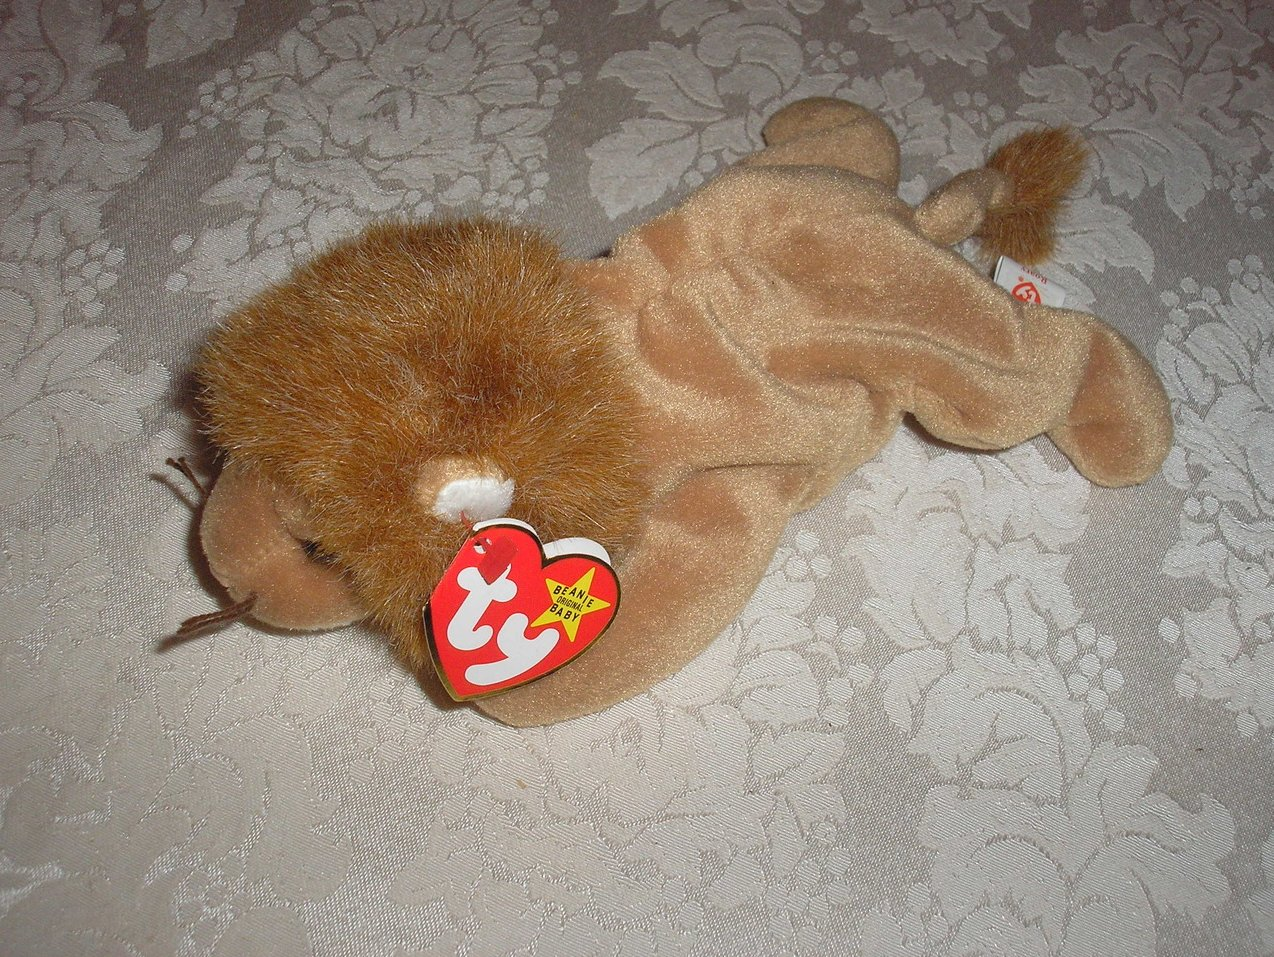 Ty Original Beanie Baby Roary Lion February 20, 1996